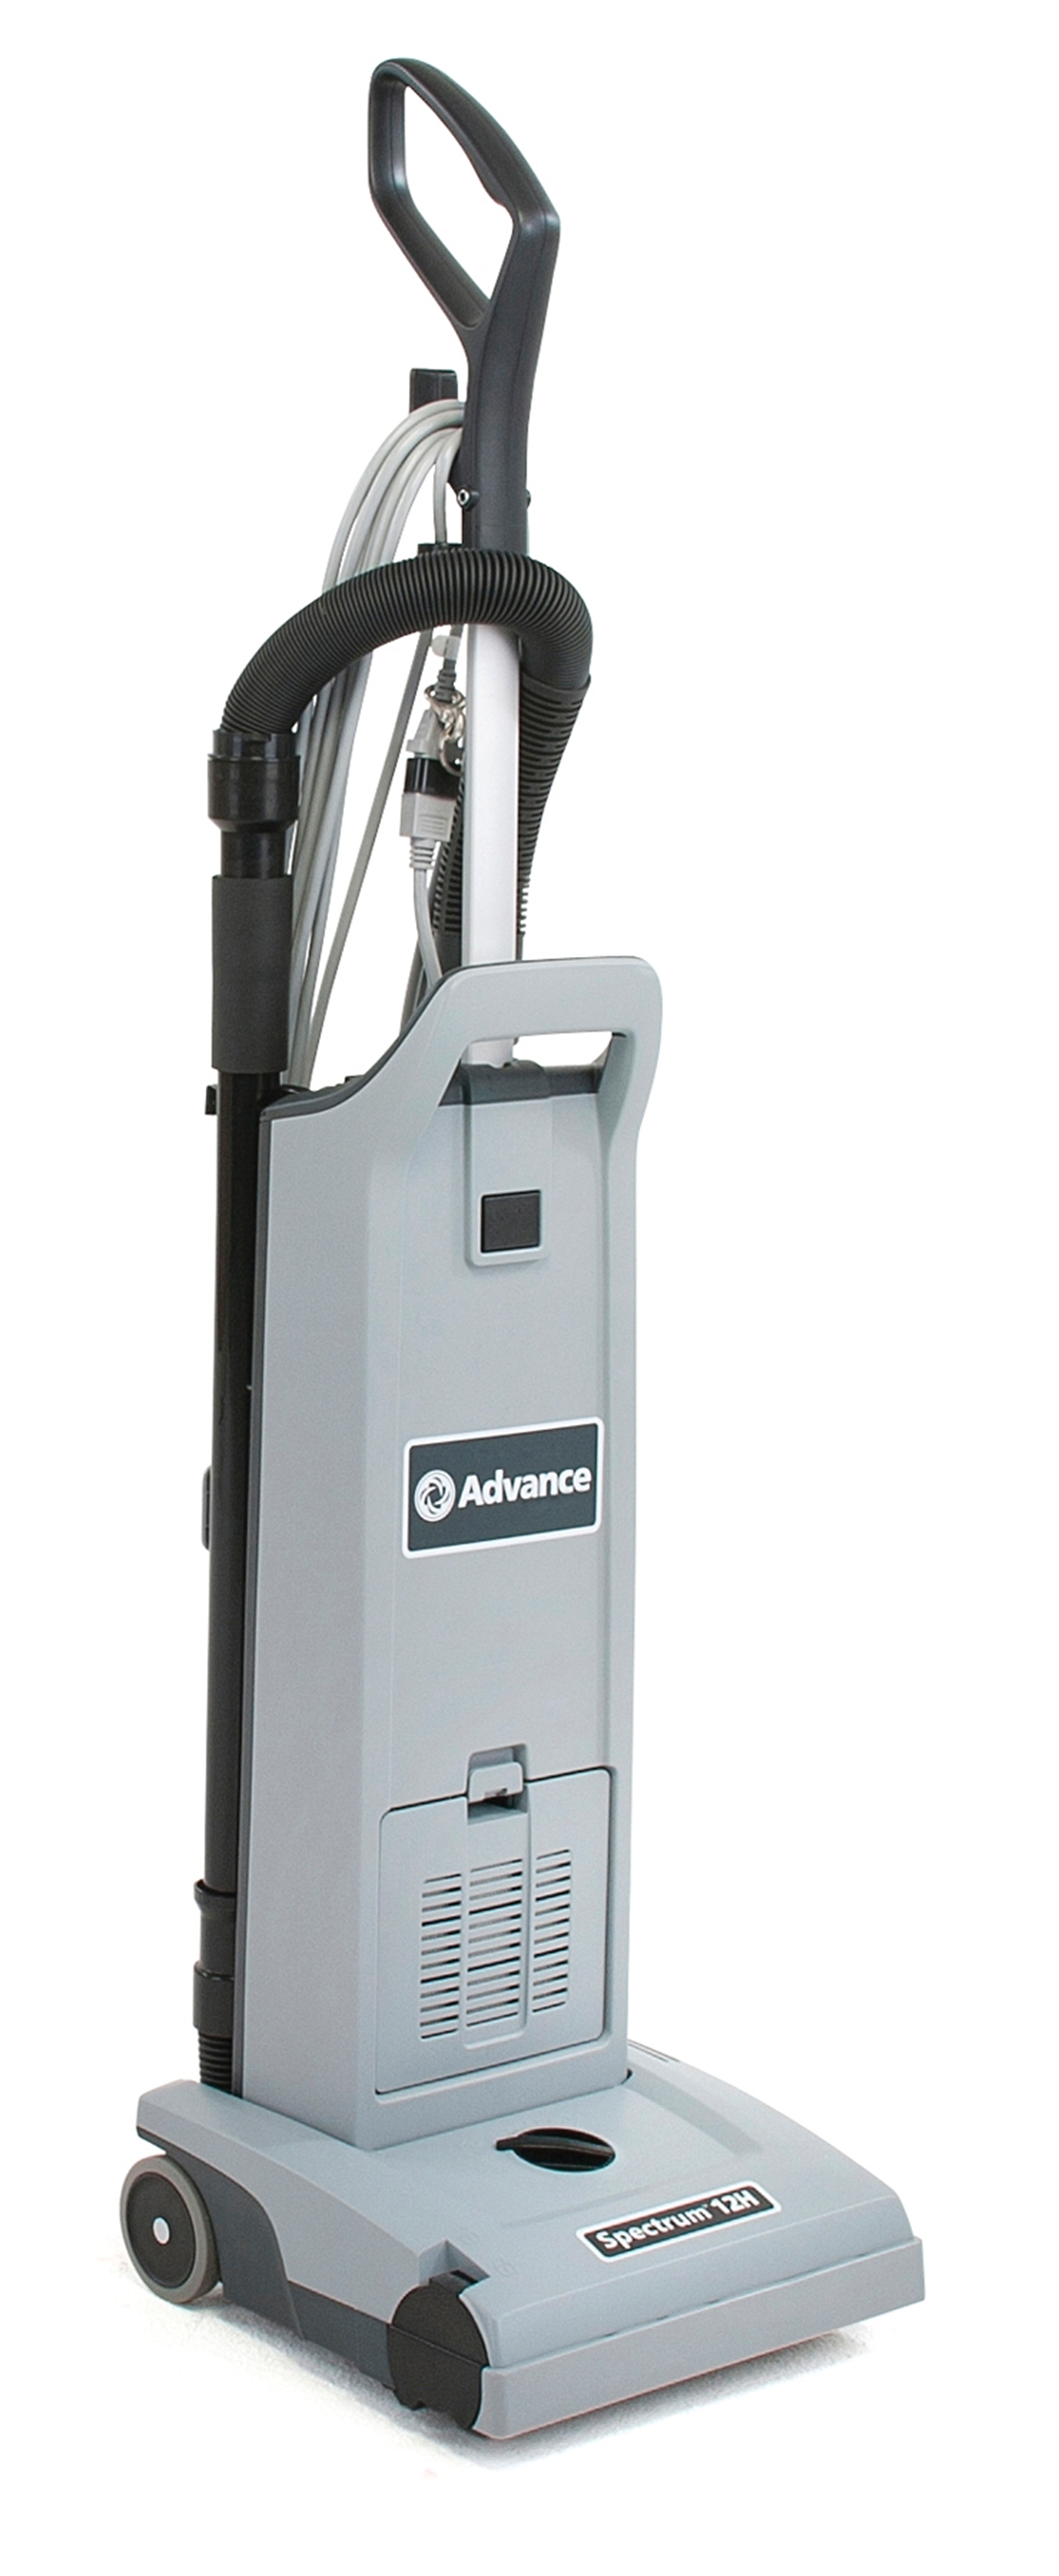 Product, Vacuum cleaners, Commercial vacuum cleaners, Upright vacuum cleaners, Nilfisk, ADVANCE SPECTRUM 15D